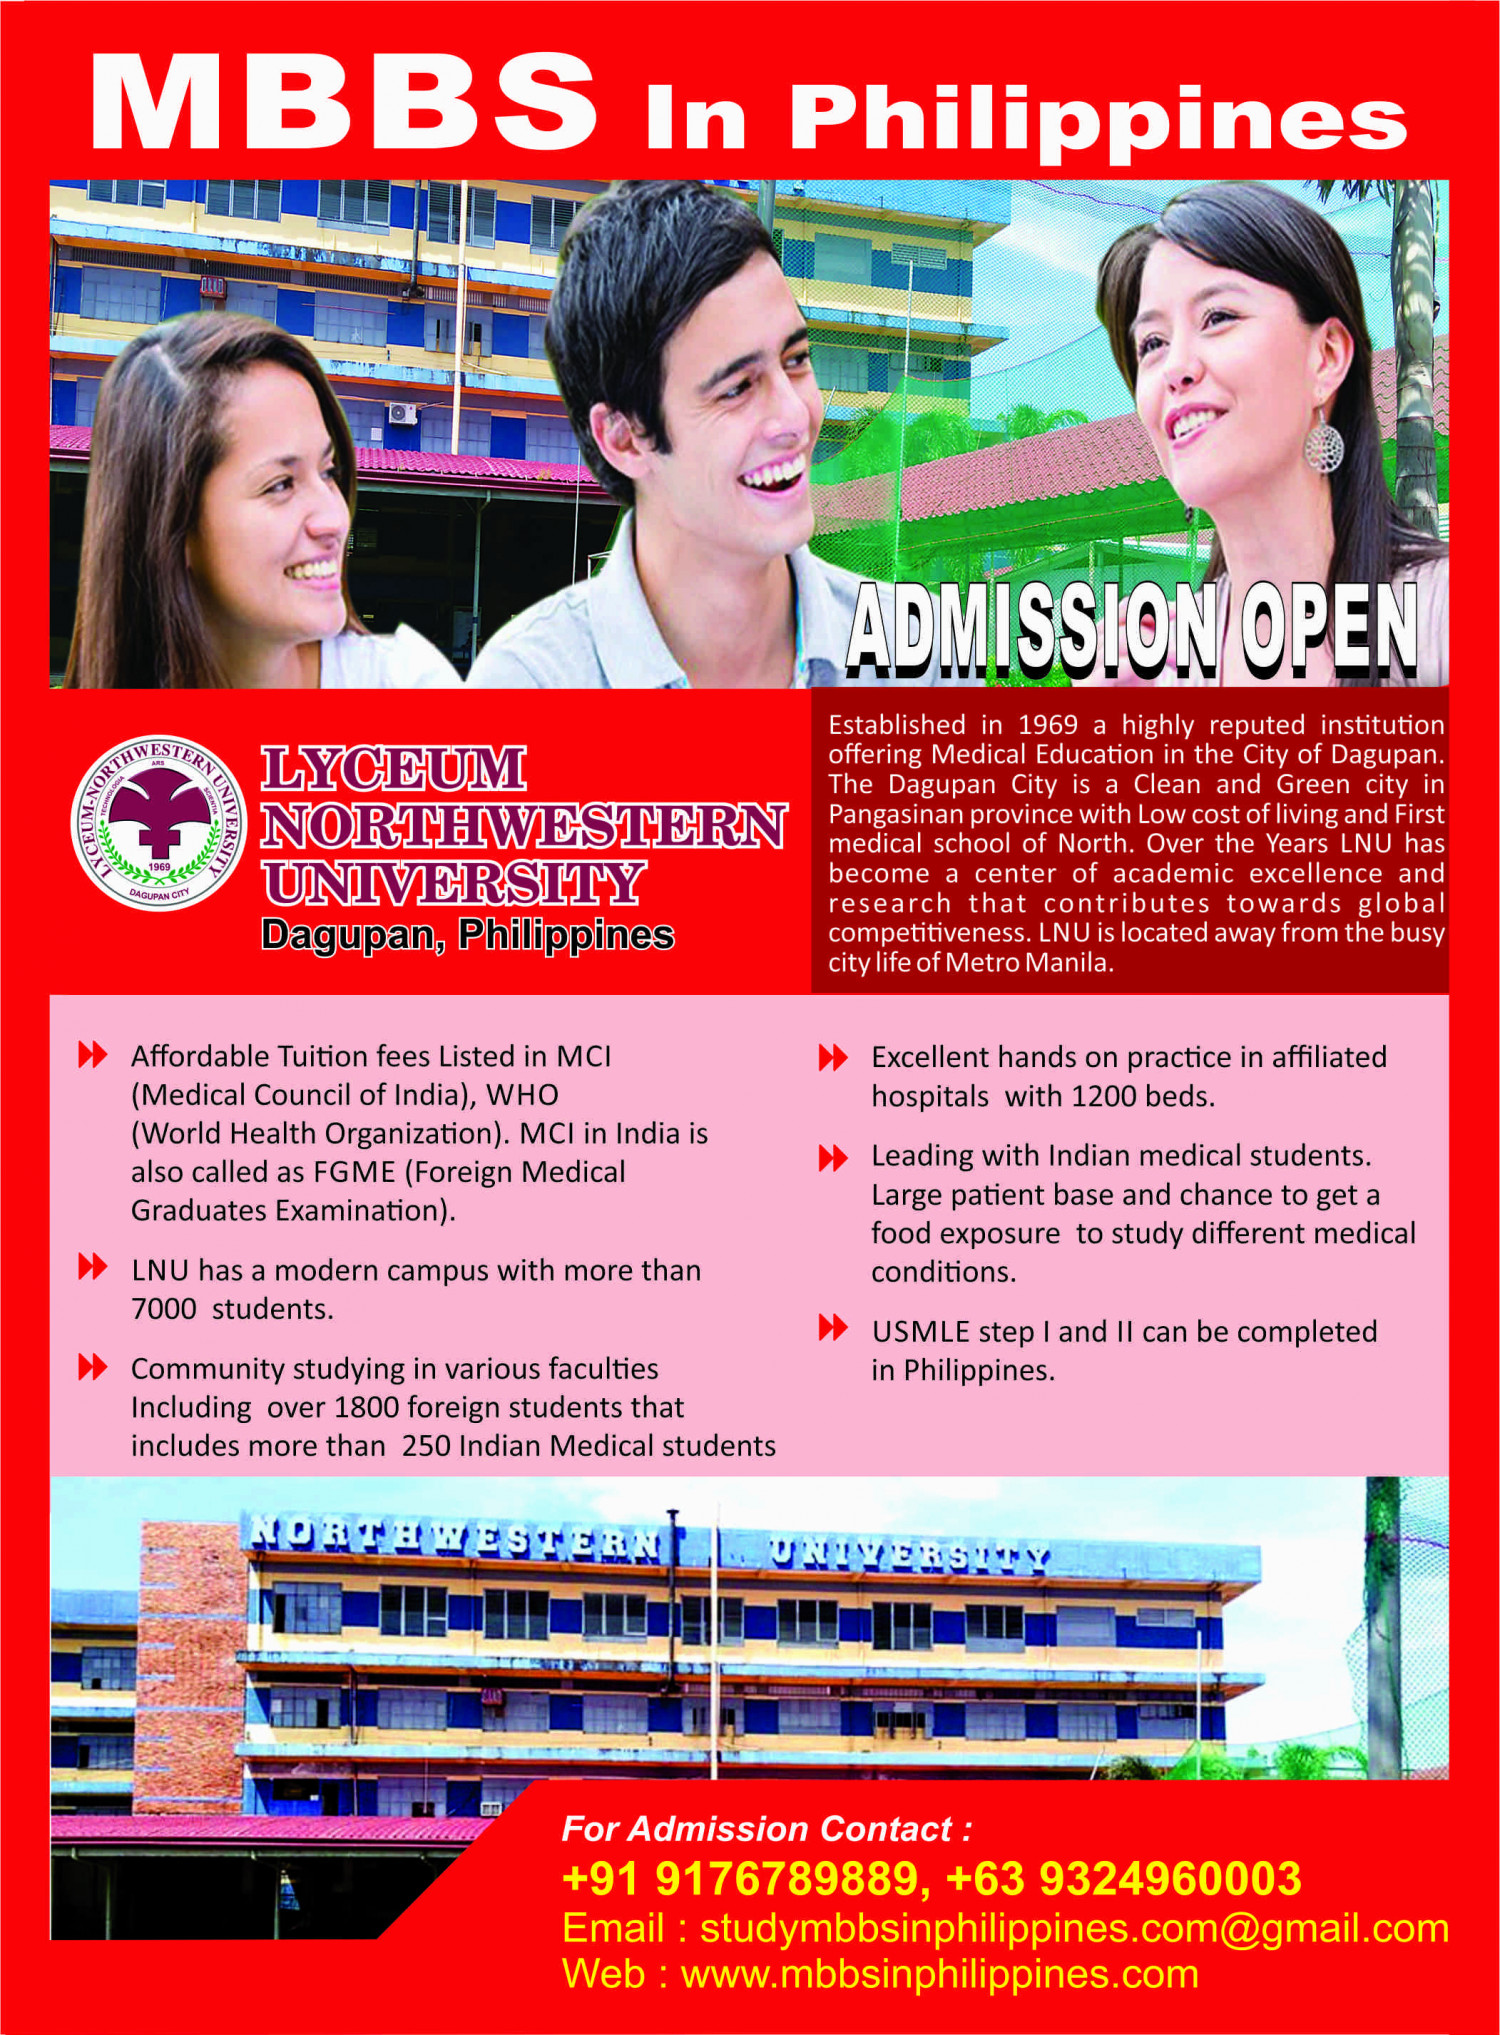 Top 5 Factors to Consider for Studying MBBS Abroad - MBBS Philippines Infographic